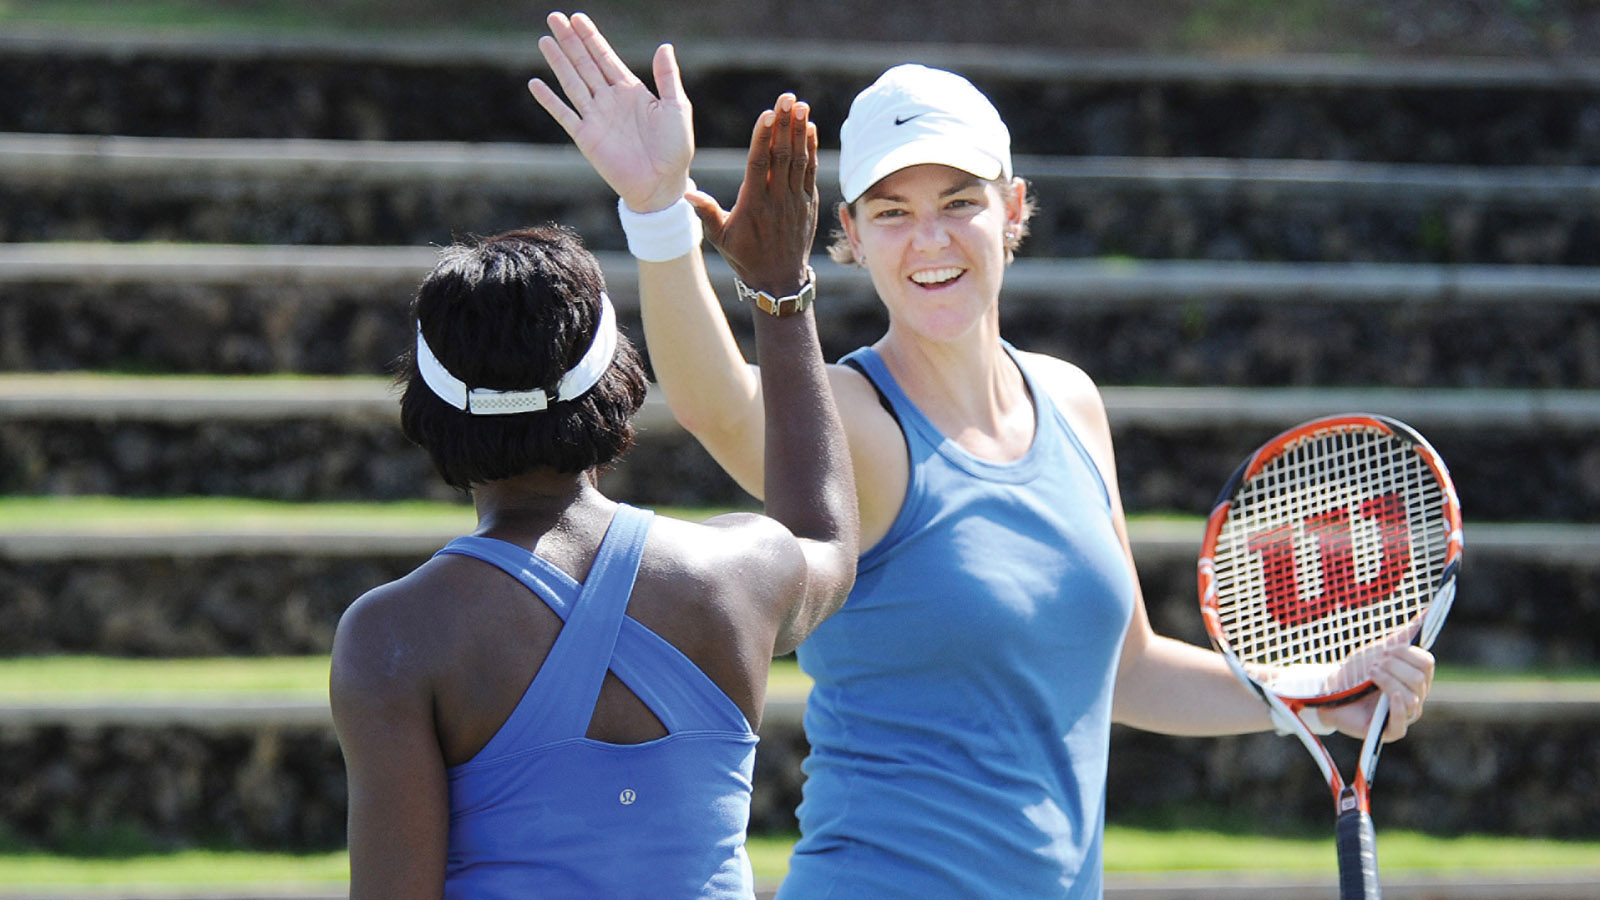 Lindsay Davenport gives New Jersey's Lisa Webber a high five after Webber's put-away at the net at the Wailea Fantasy Camp clinic Friday morning. (Photo: Courtesy of the Four Seasons Maui)